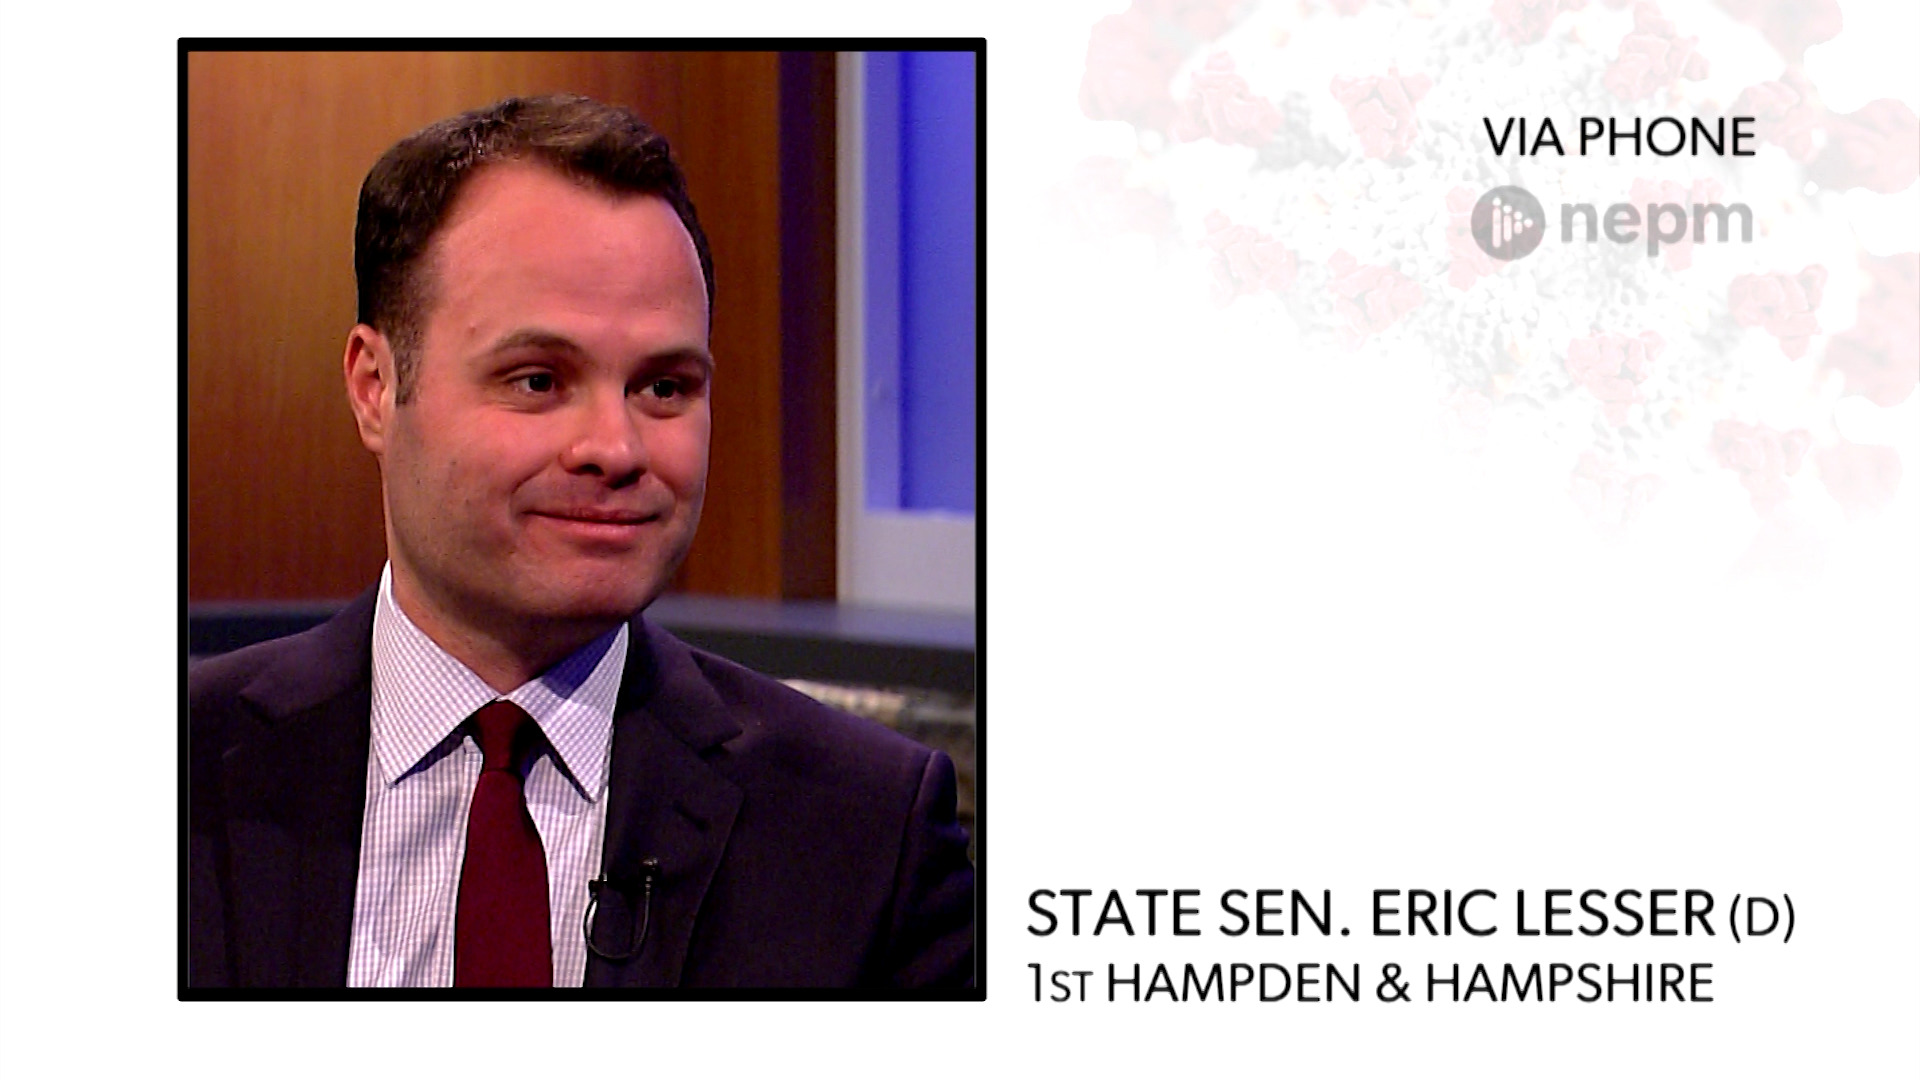 WATCH: Sen. Eric Lesser shares his concerns about the state's new free COVID-19 testing sites, none of which are in western Mass.